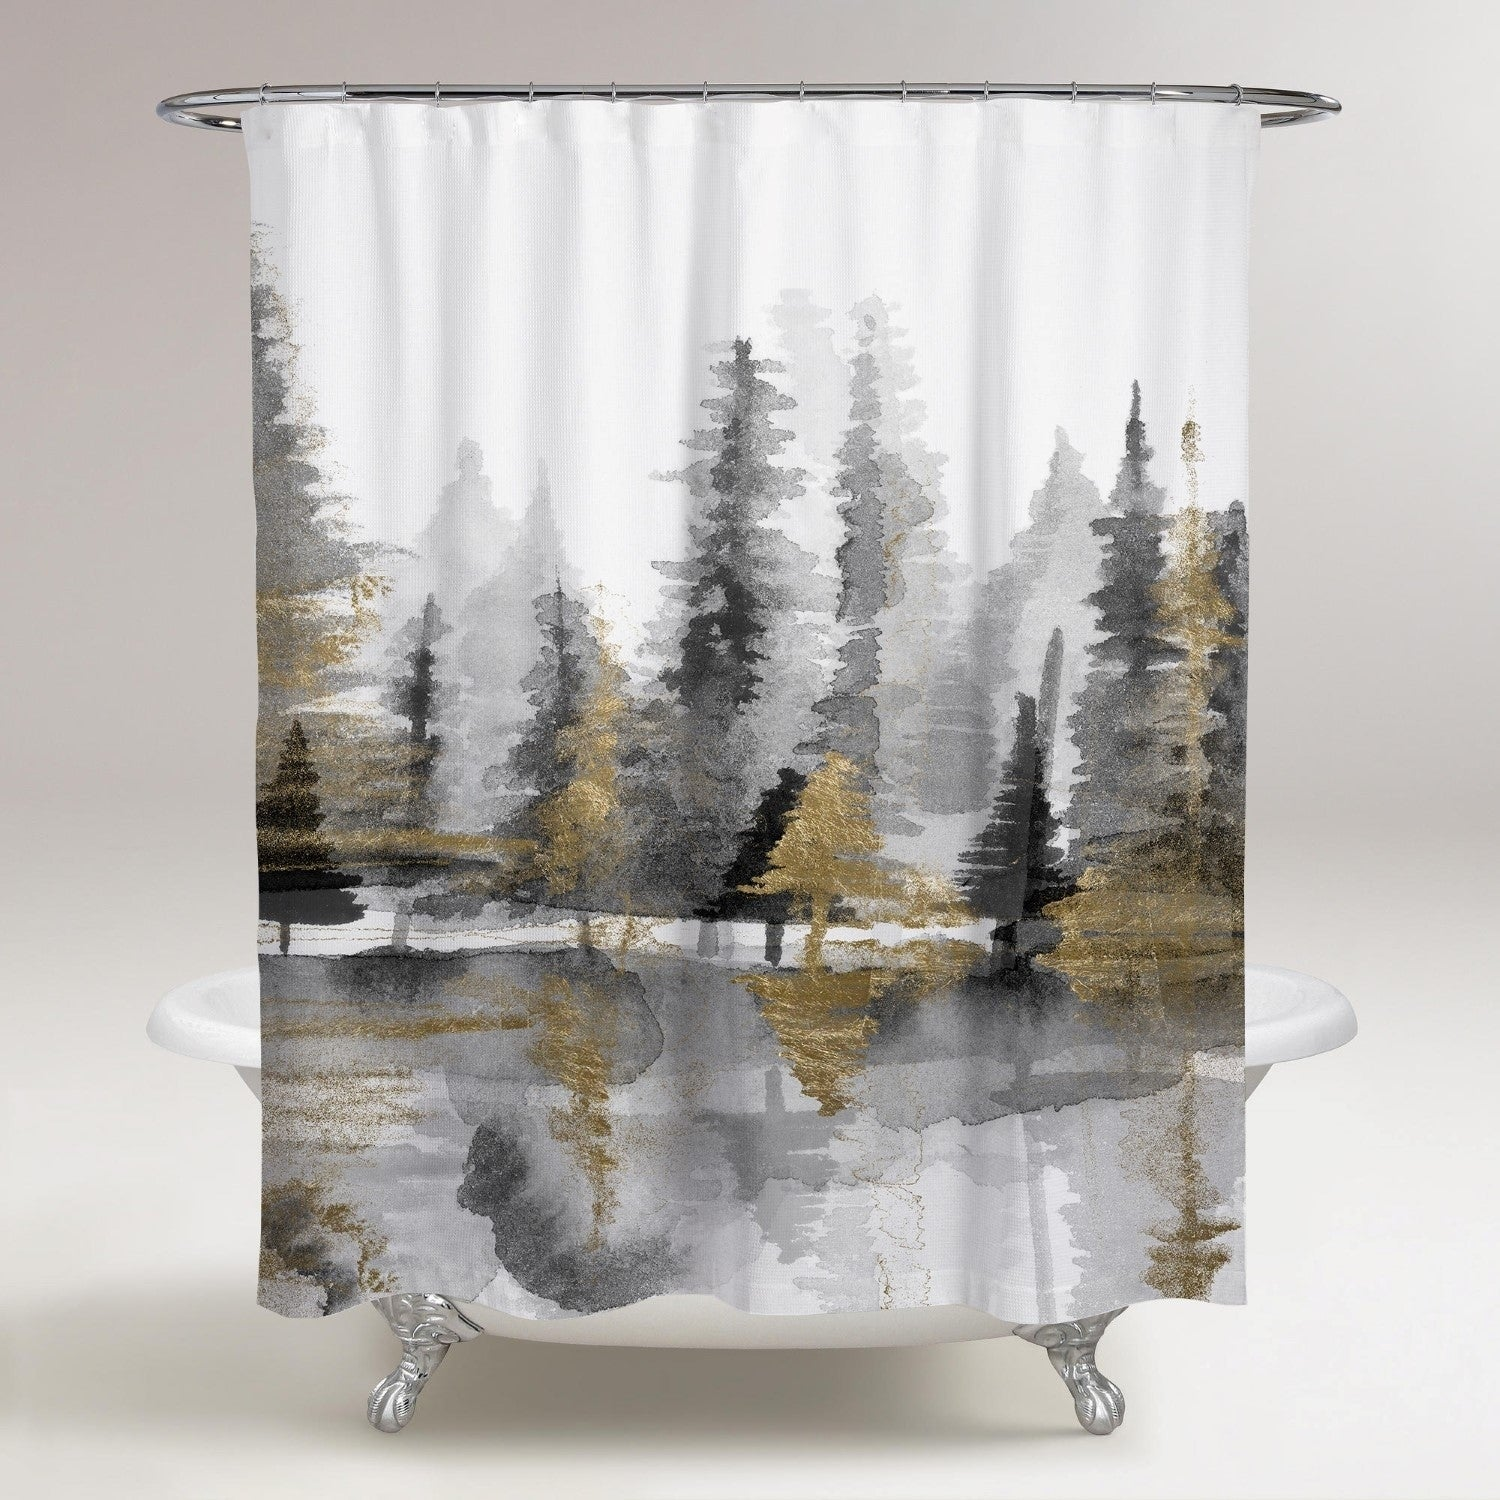 Olivergal Golden Reflection Iii Shower Curtain On Free Shipping Today 18536581